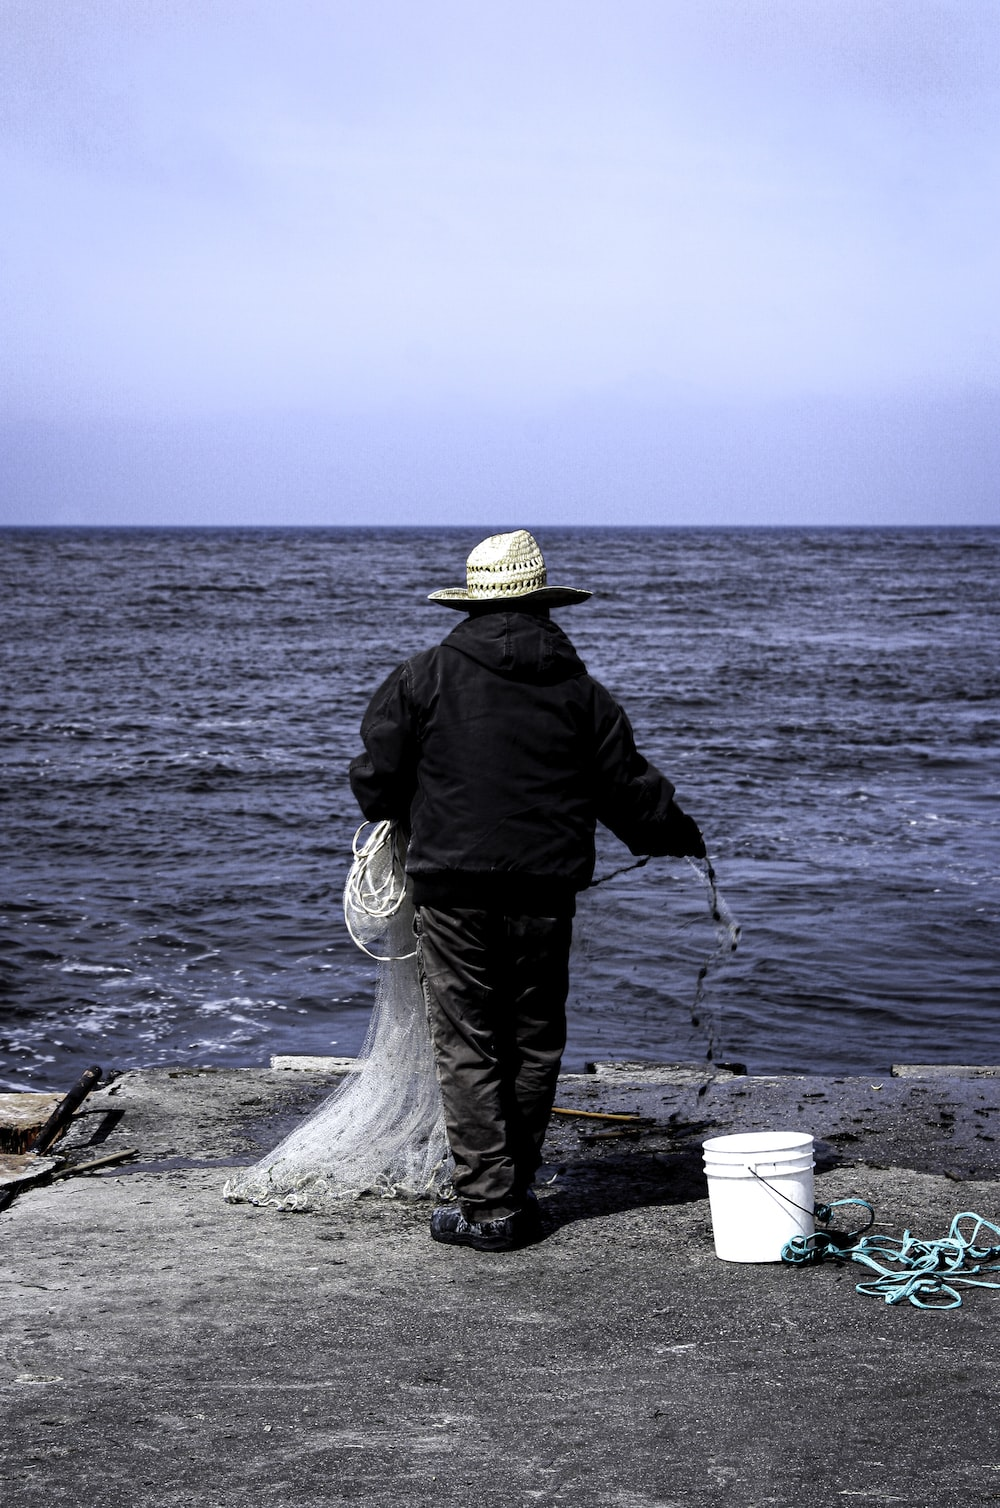 man in black jacket and brown hat holding stick near body of water during daytime